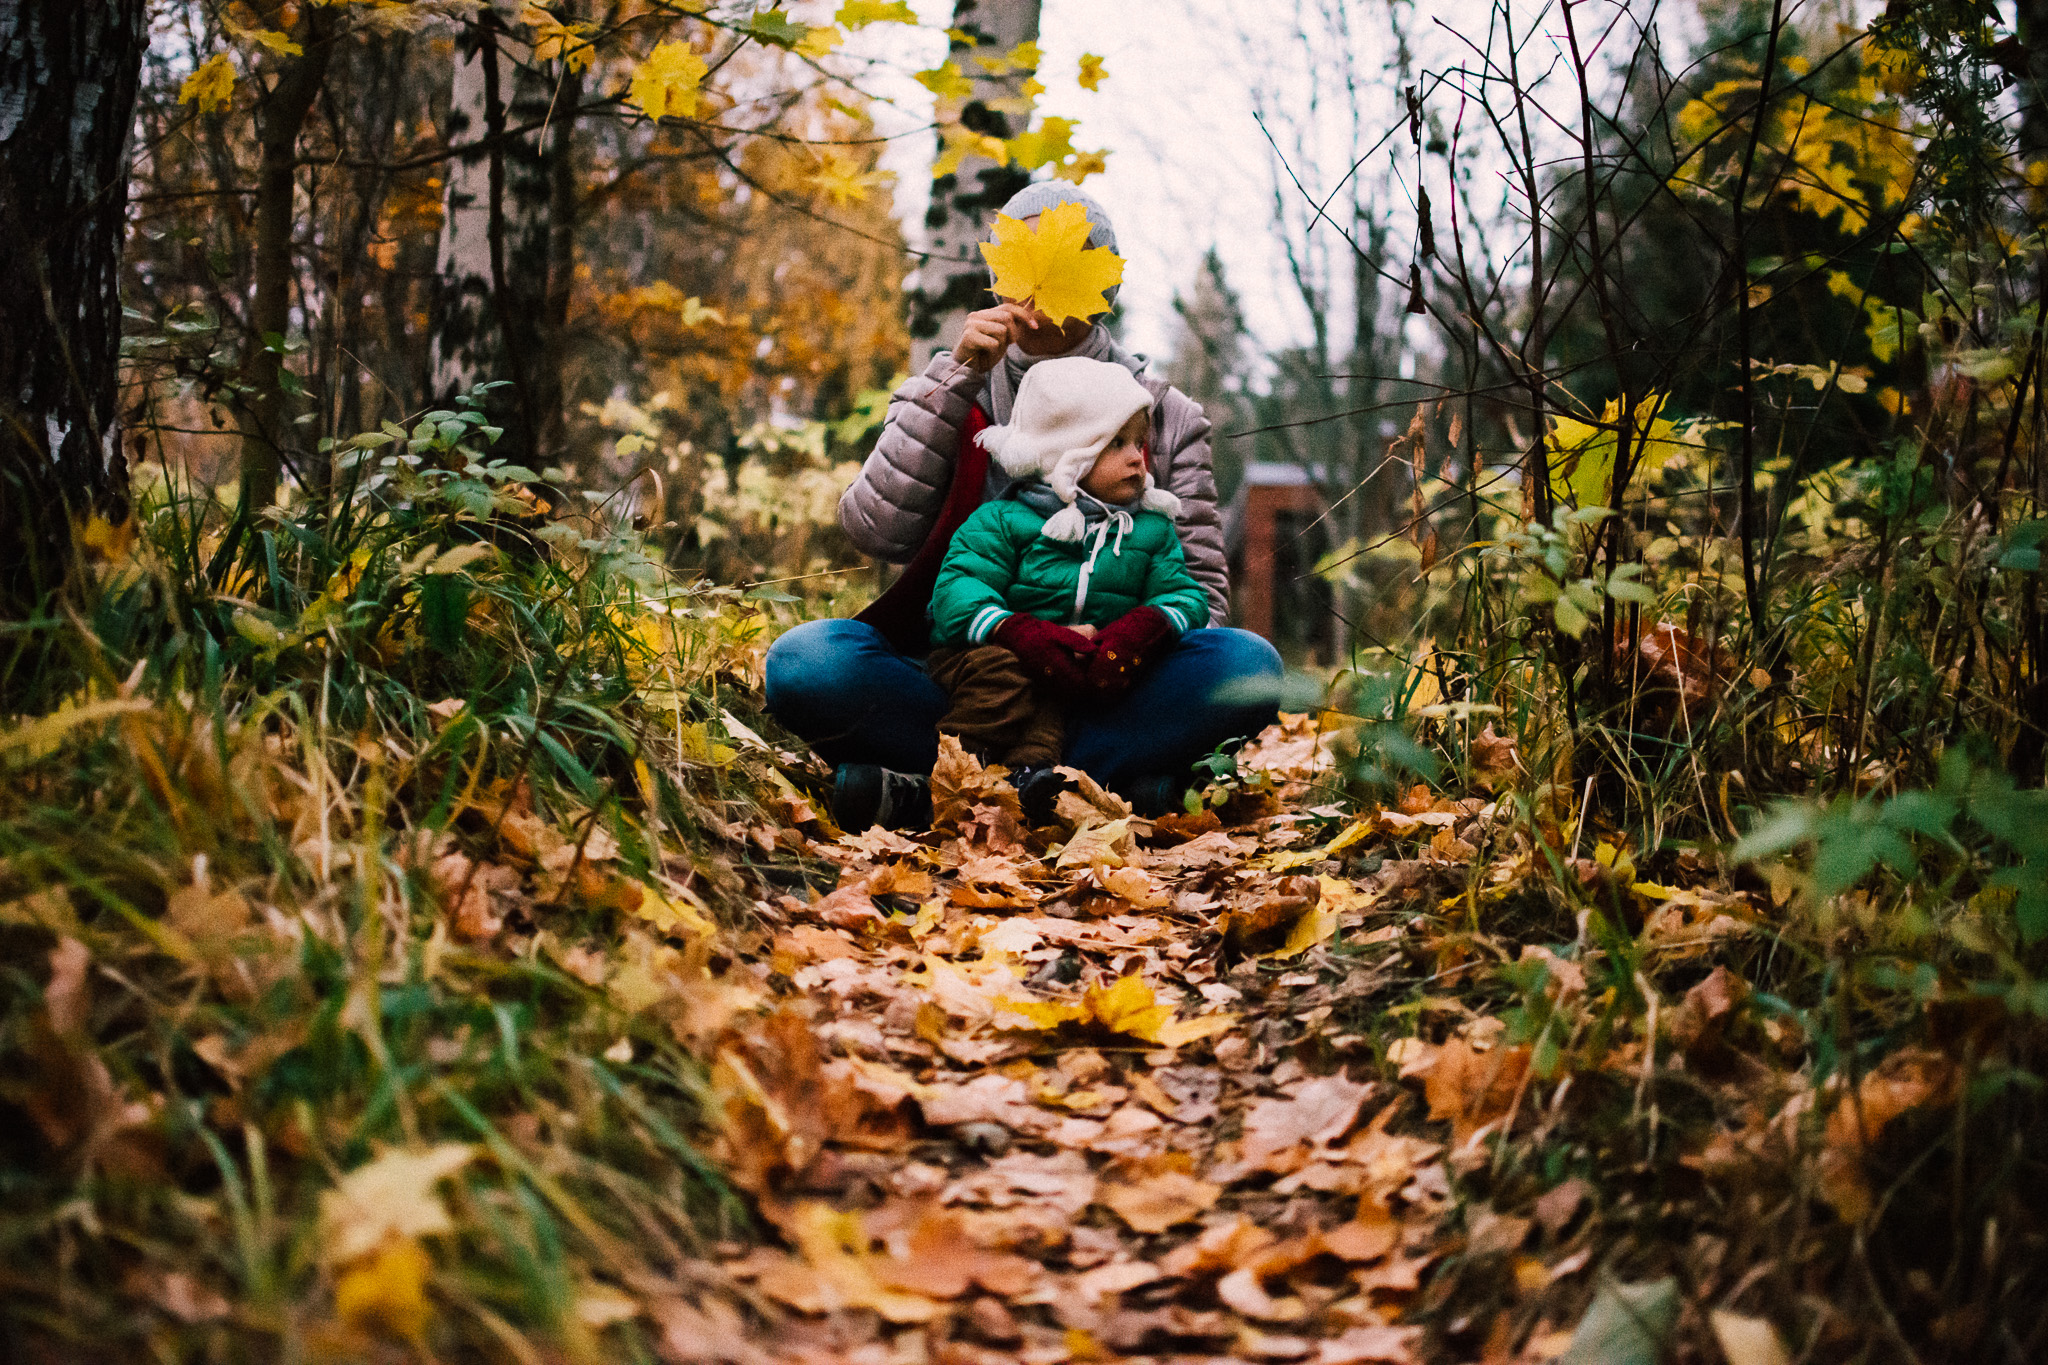 Child with mother sitting in autumn leaves